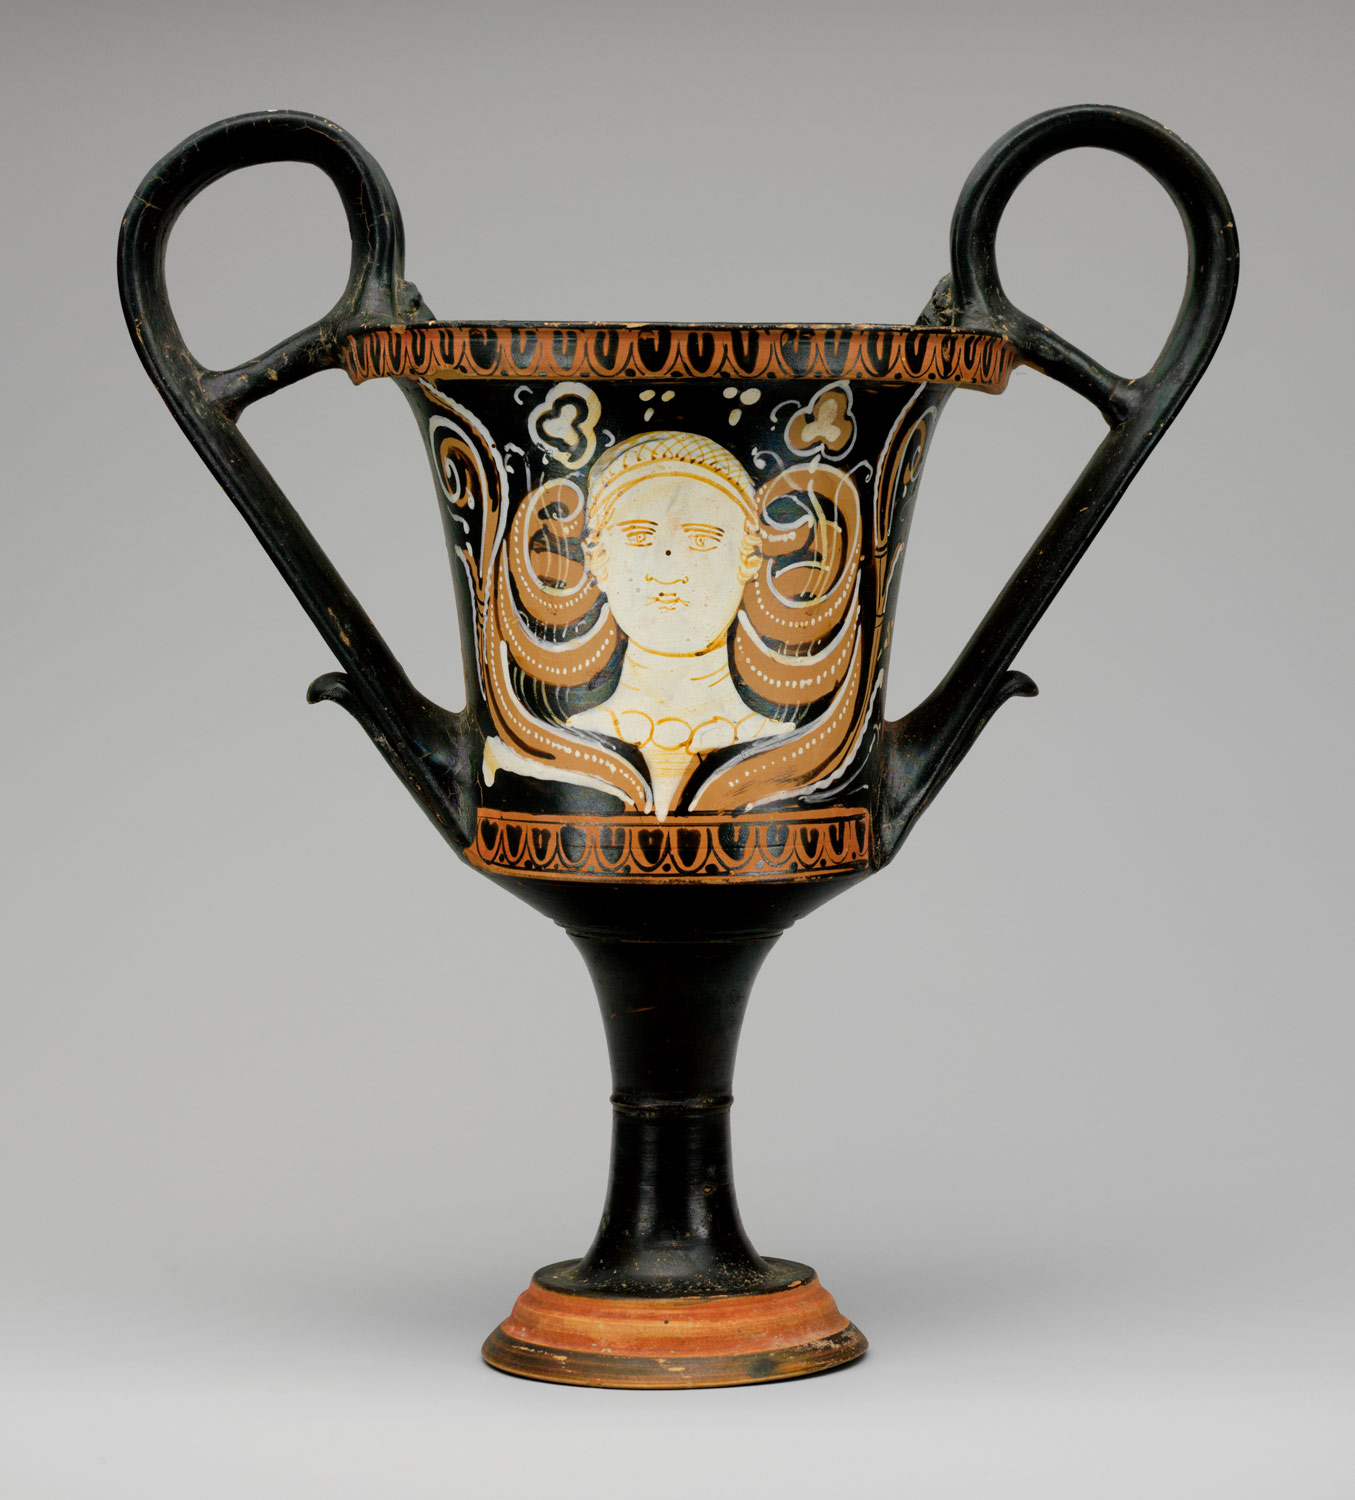 Terracotta kantharos (drinking cup with high handles)